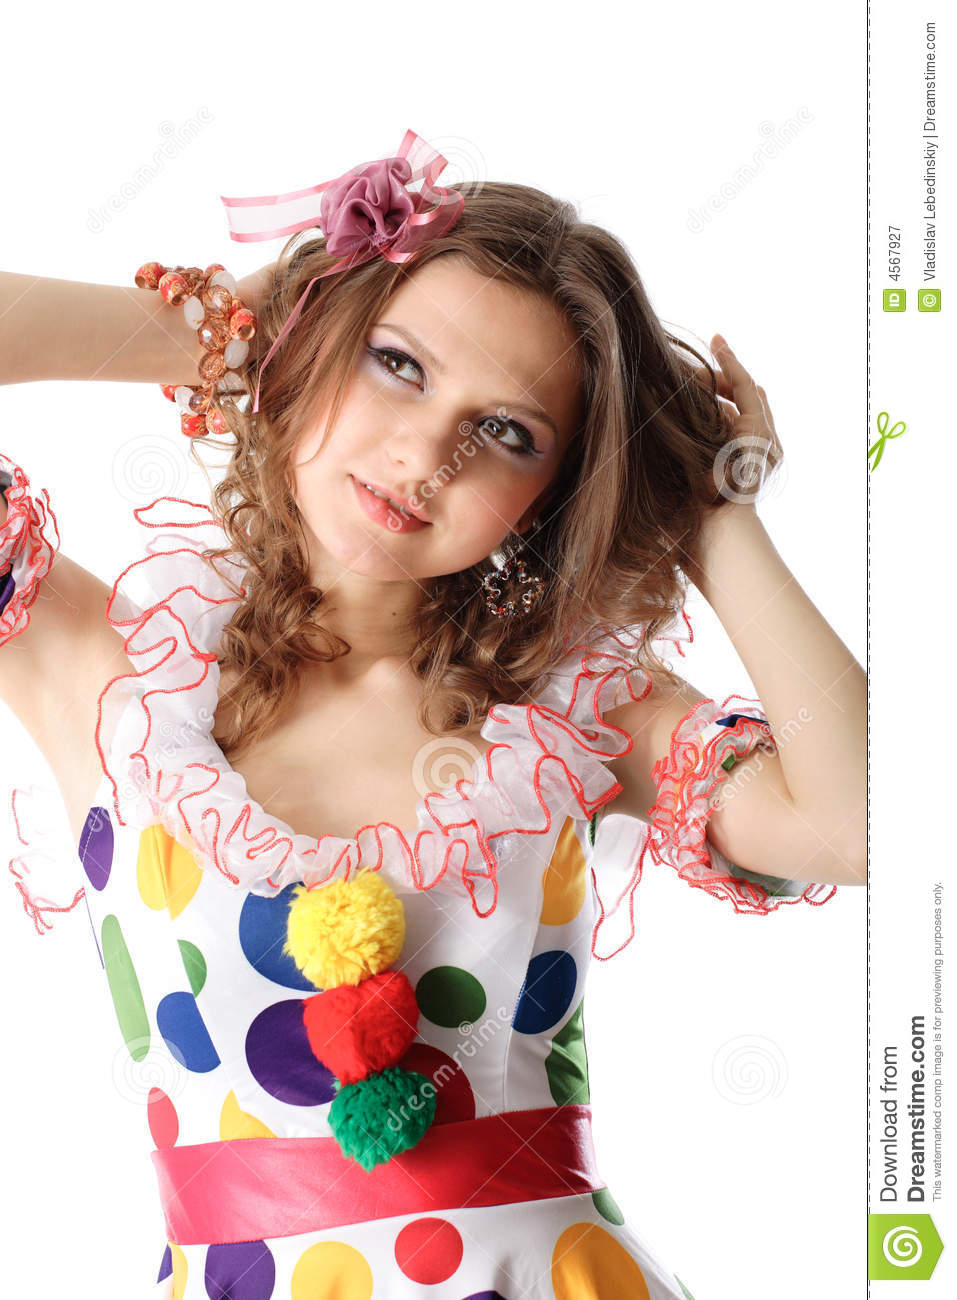 Teen Girl In Party Dress Stock Image Image Of Lightheartedly - 4567927-4609